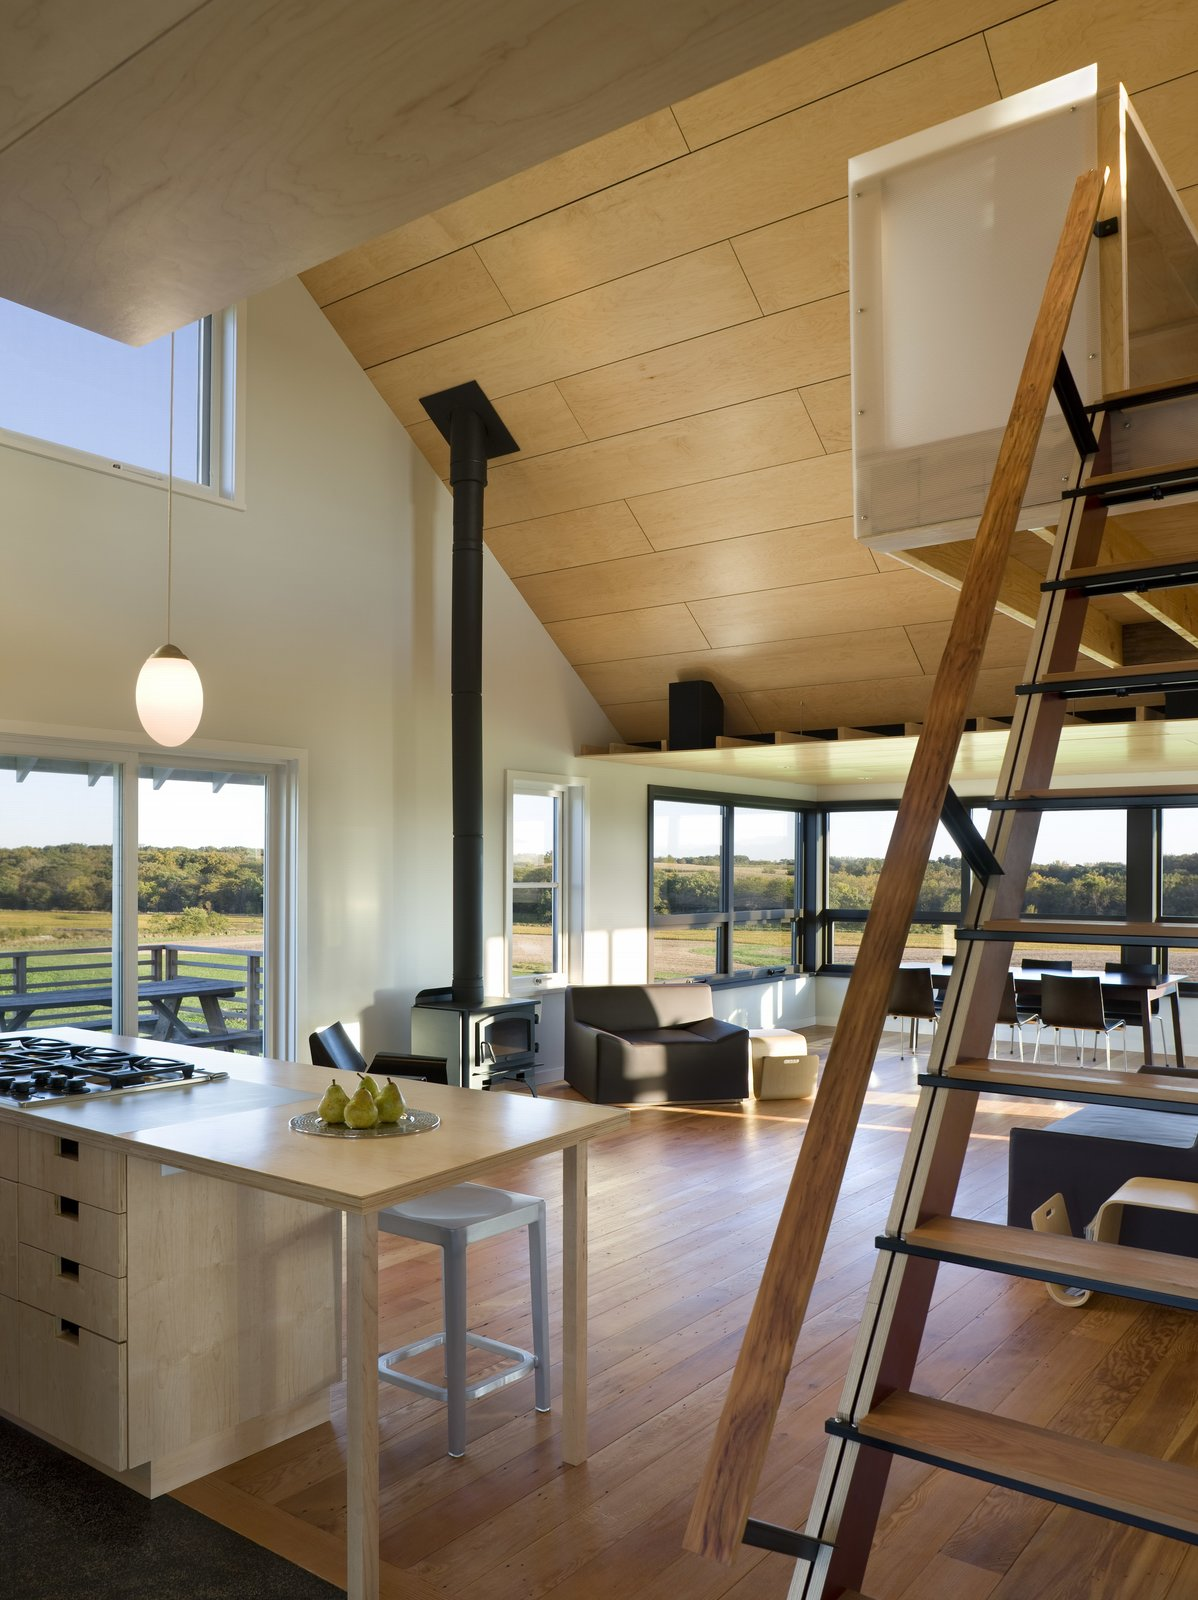 Sliding fabric panels allow the enclosed porch to be used for dining or overflow sleeping. A loft overlooking the main living space and views of the farm serves as office space.